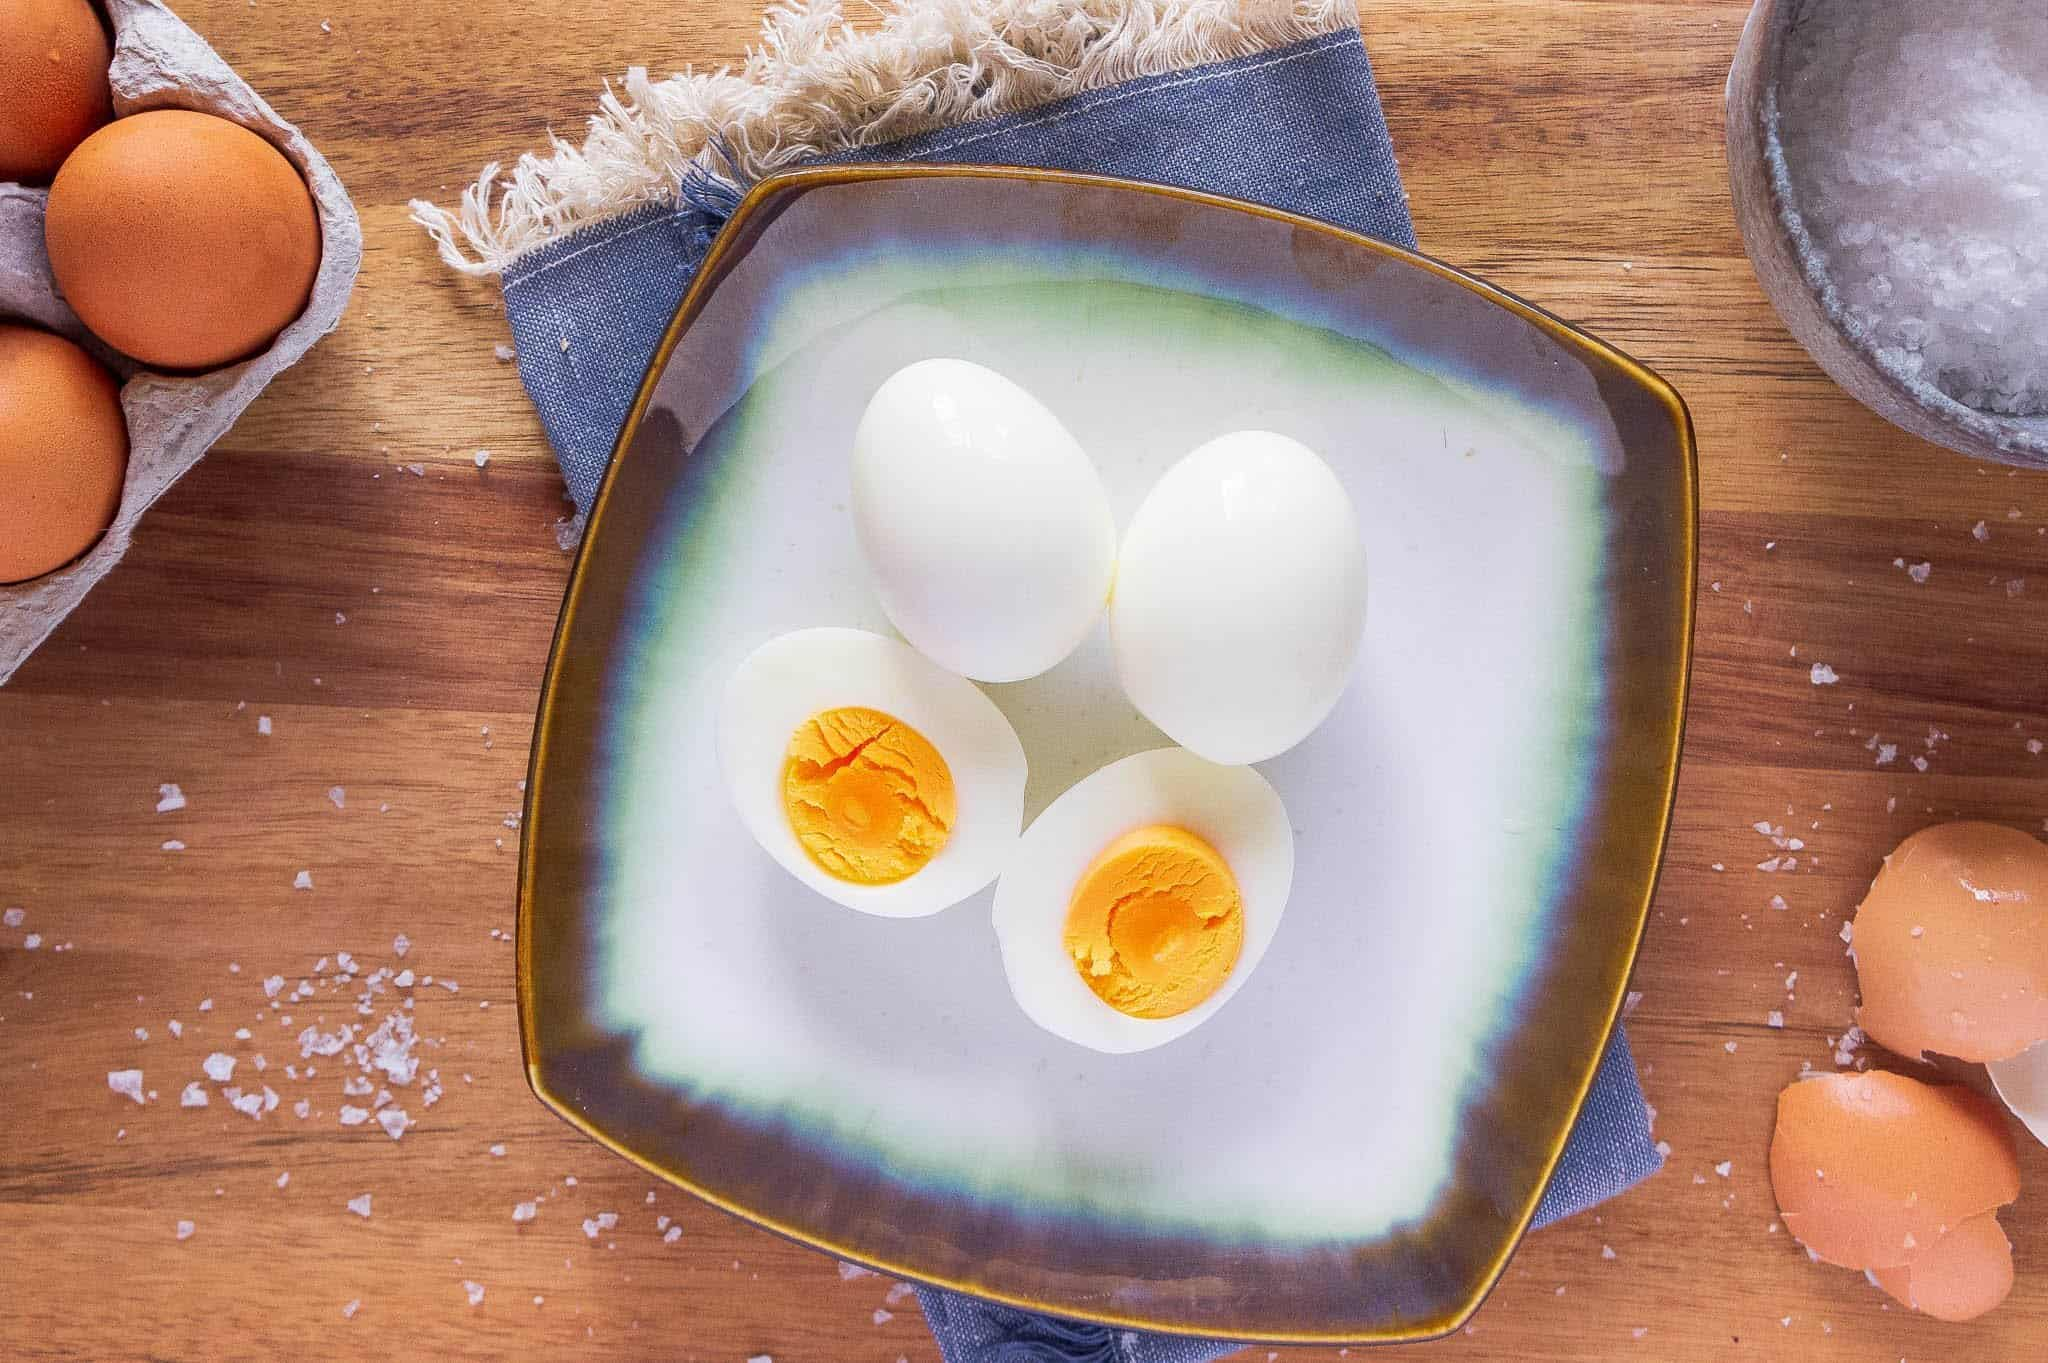 Hardcooked eggs that peel easy